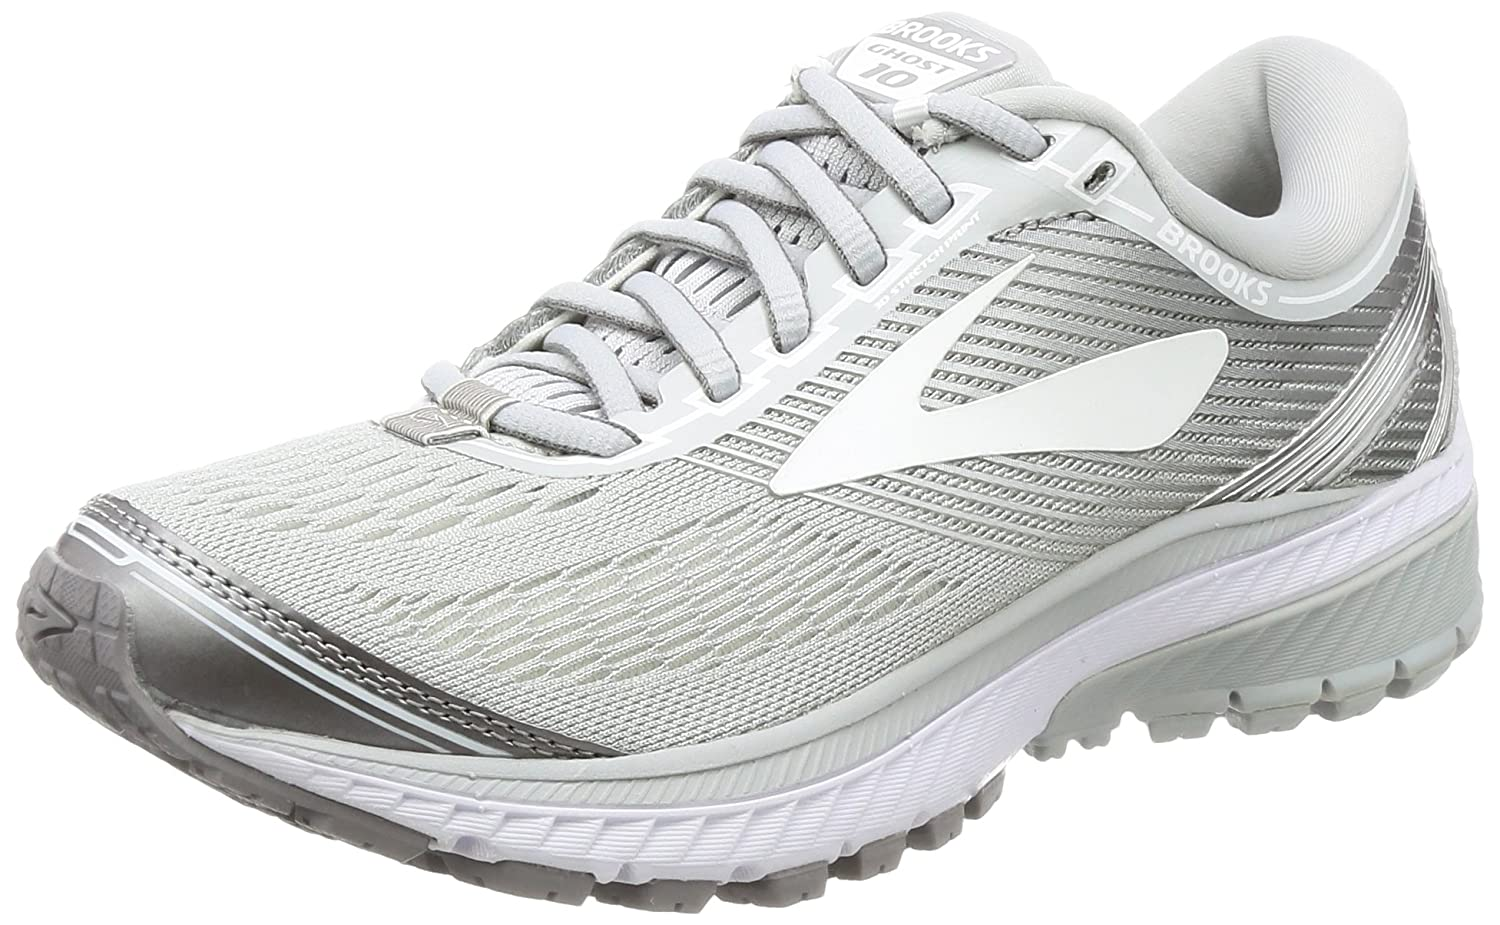 Brooks Women's Ghost 10 Running Shoe B01MQGIJ3Q 5.5 B(M) US|Microchip/White/Metallic Charcoal